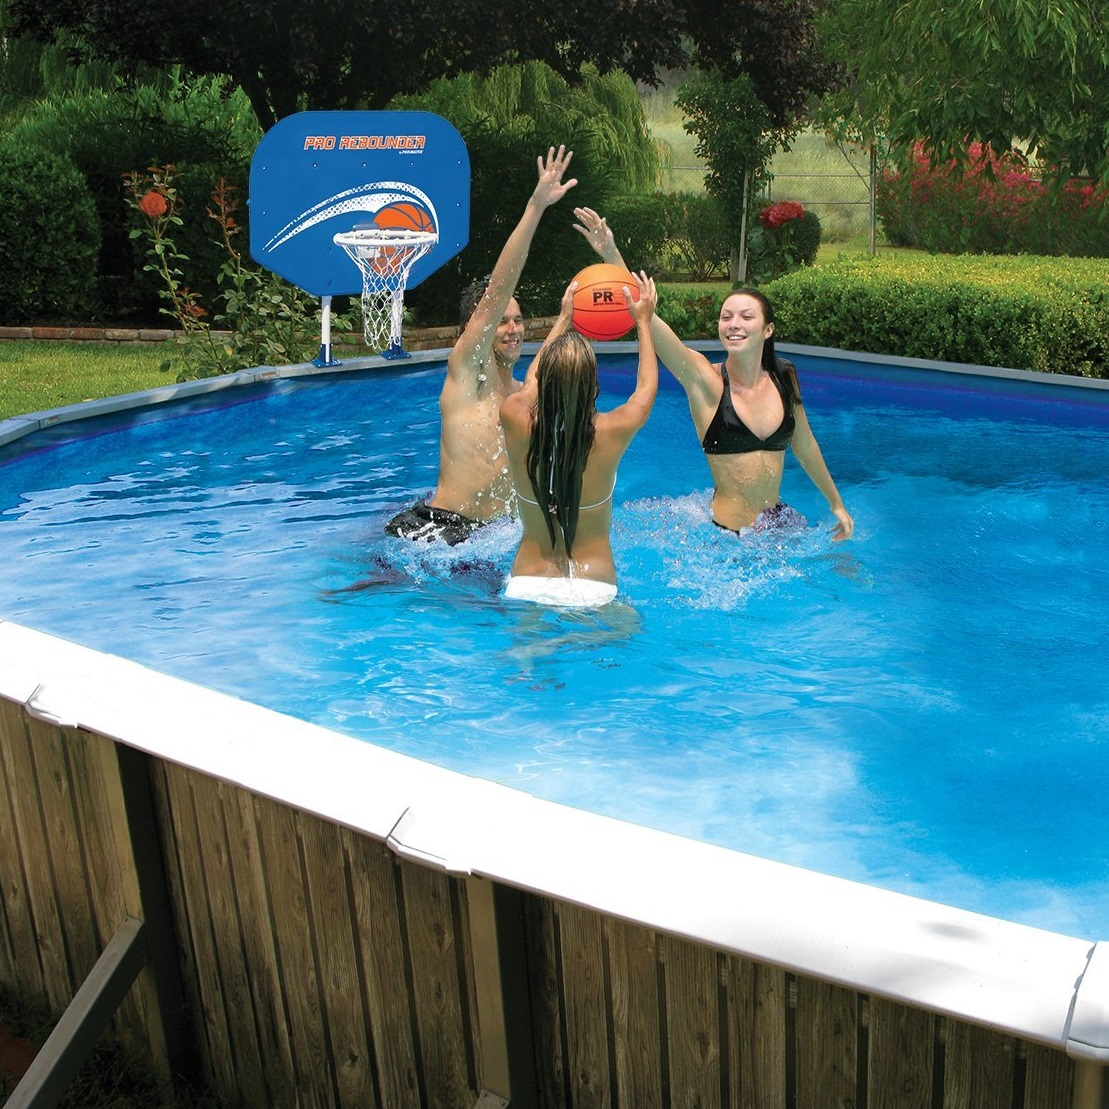 Poolmaster Basketball & Volleyball Game